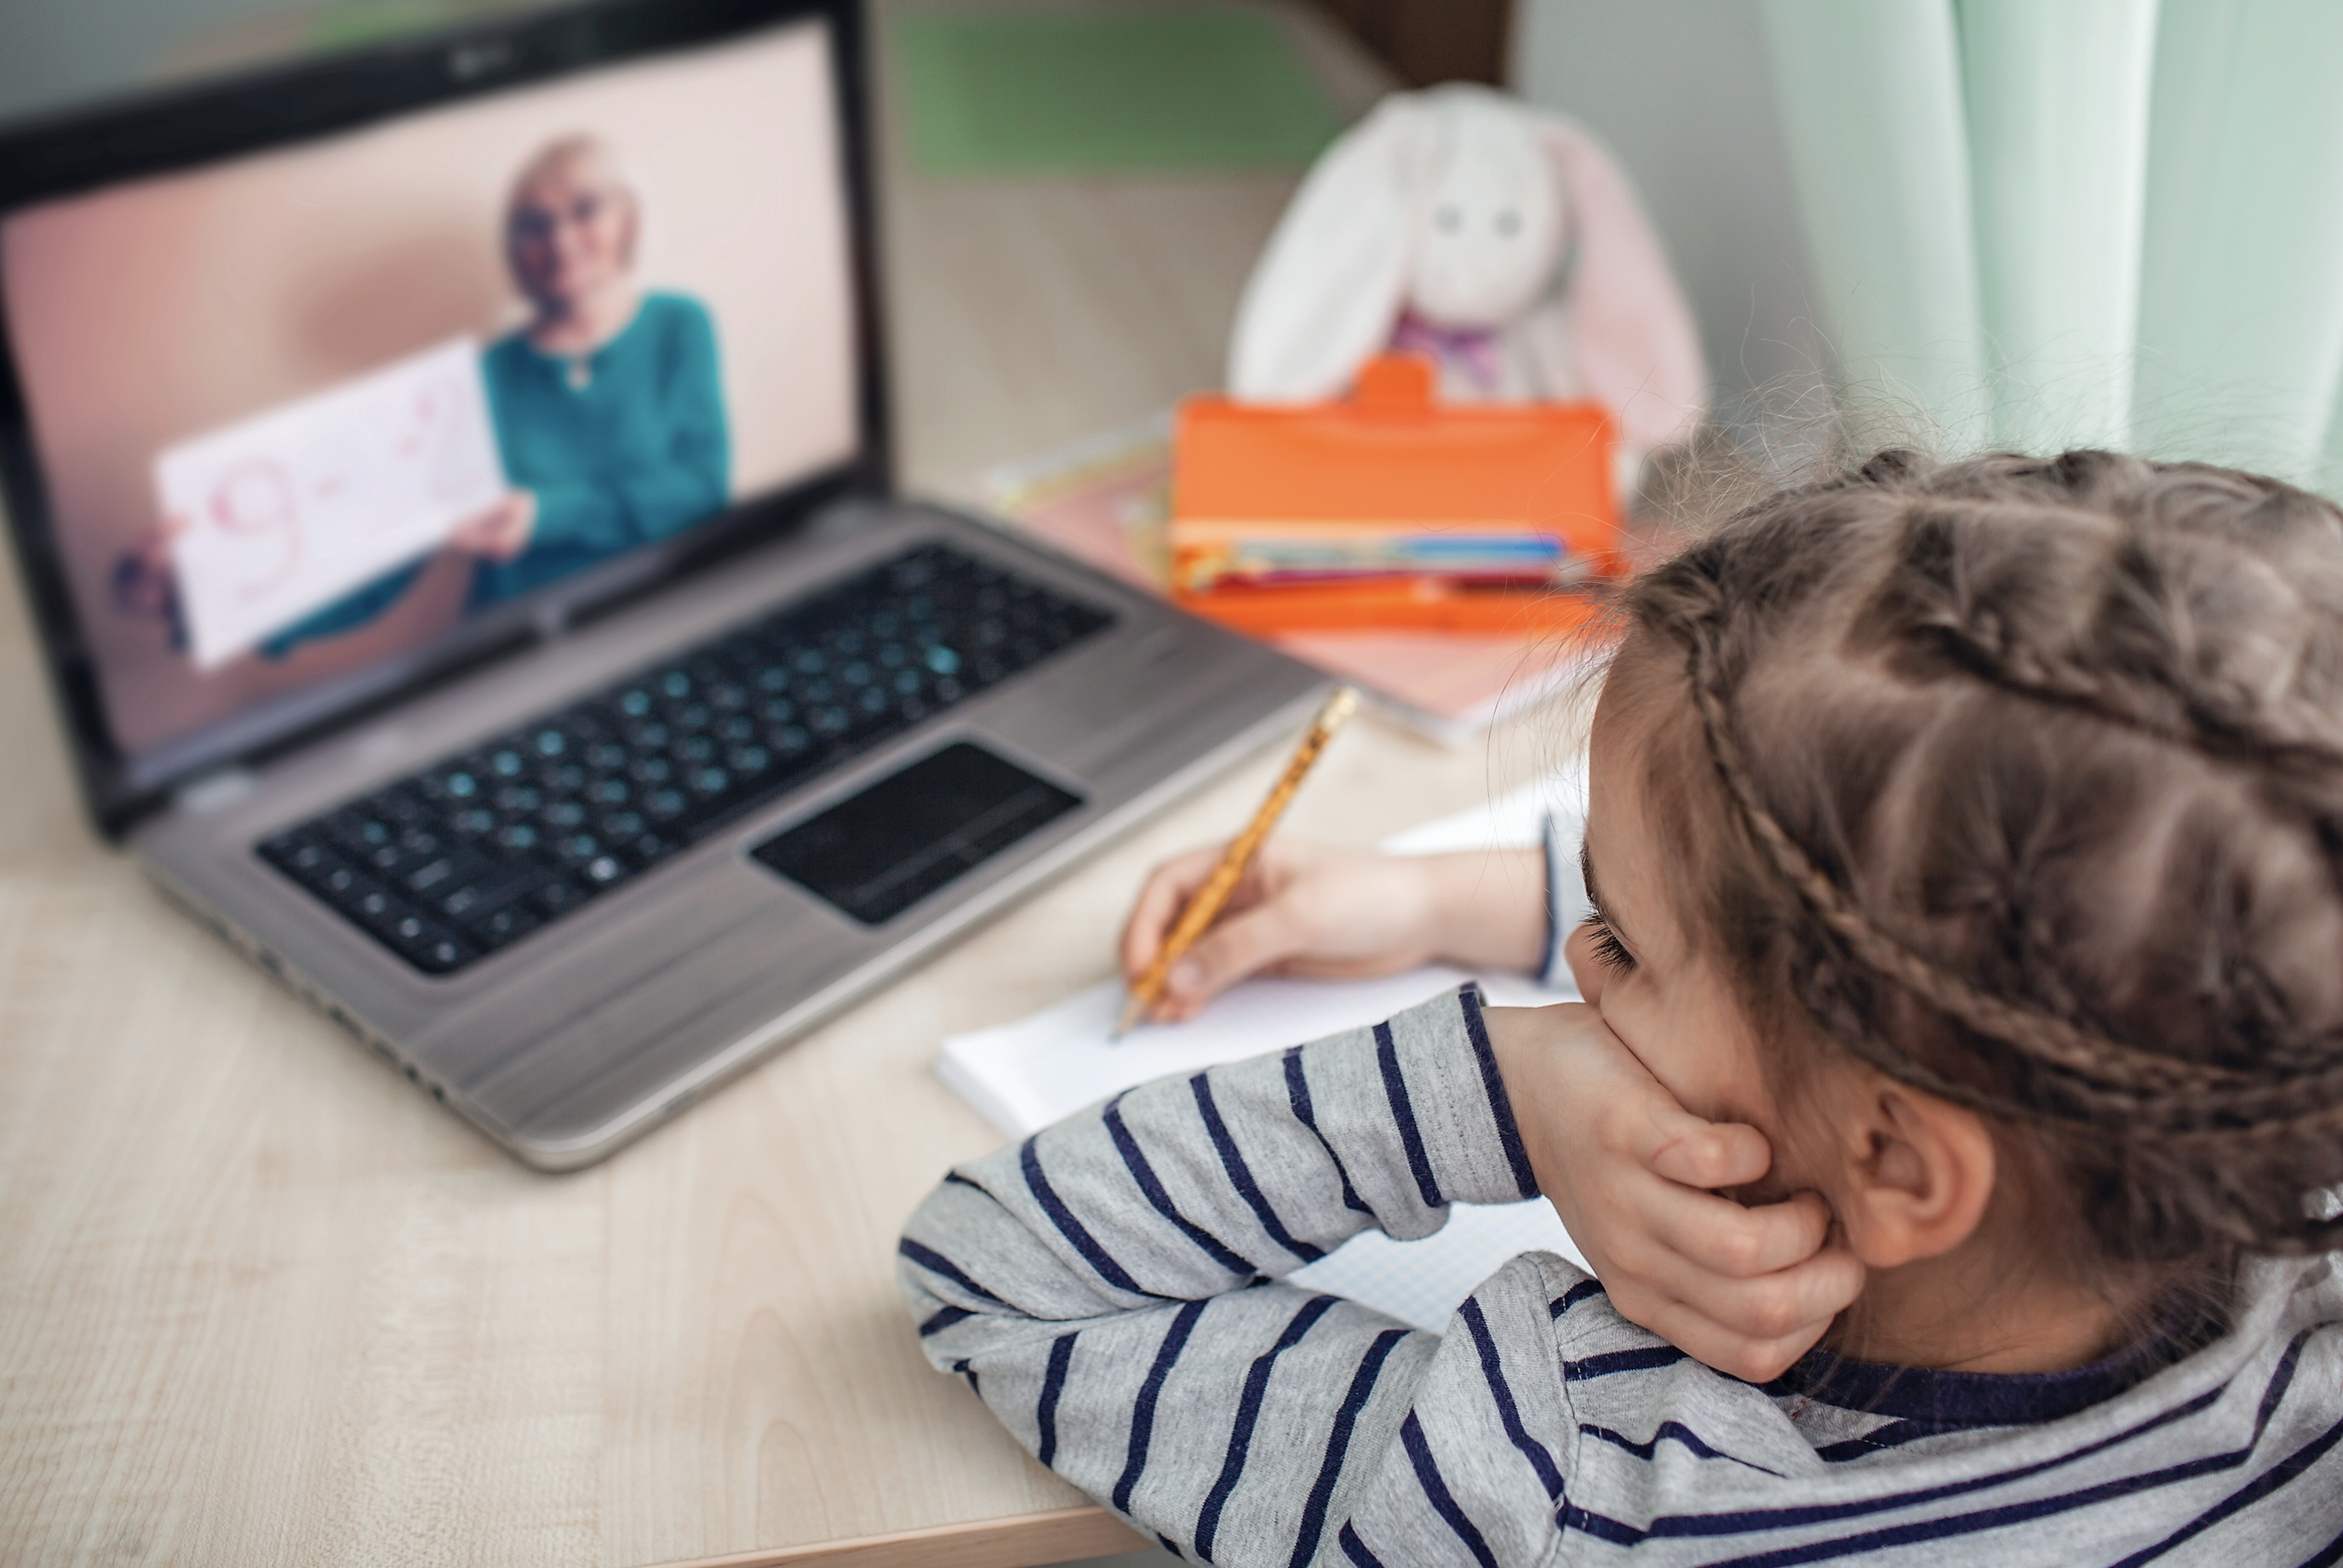 8 Tips to Help Your Child Focus and Stay Engaged During Distance Learning |  JHU School of Education